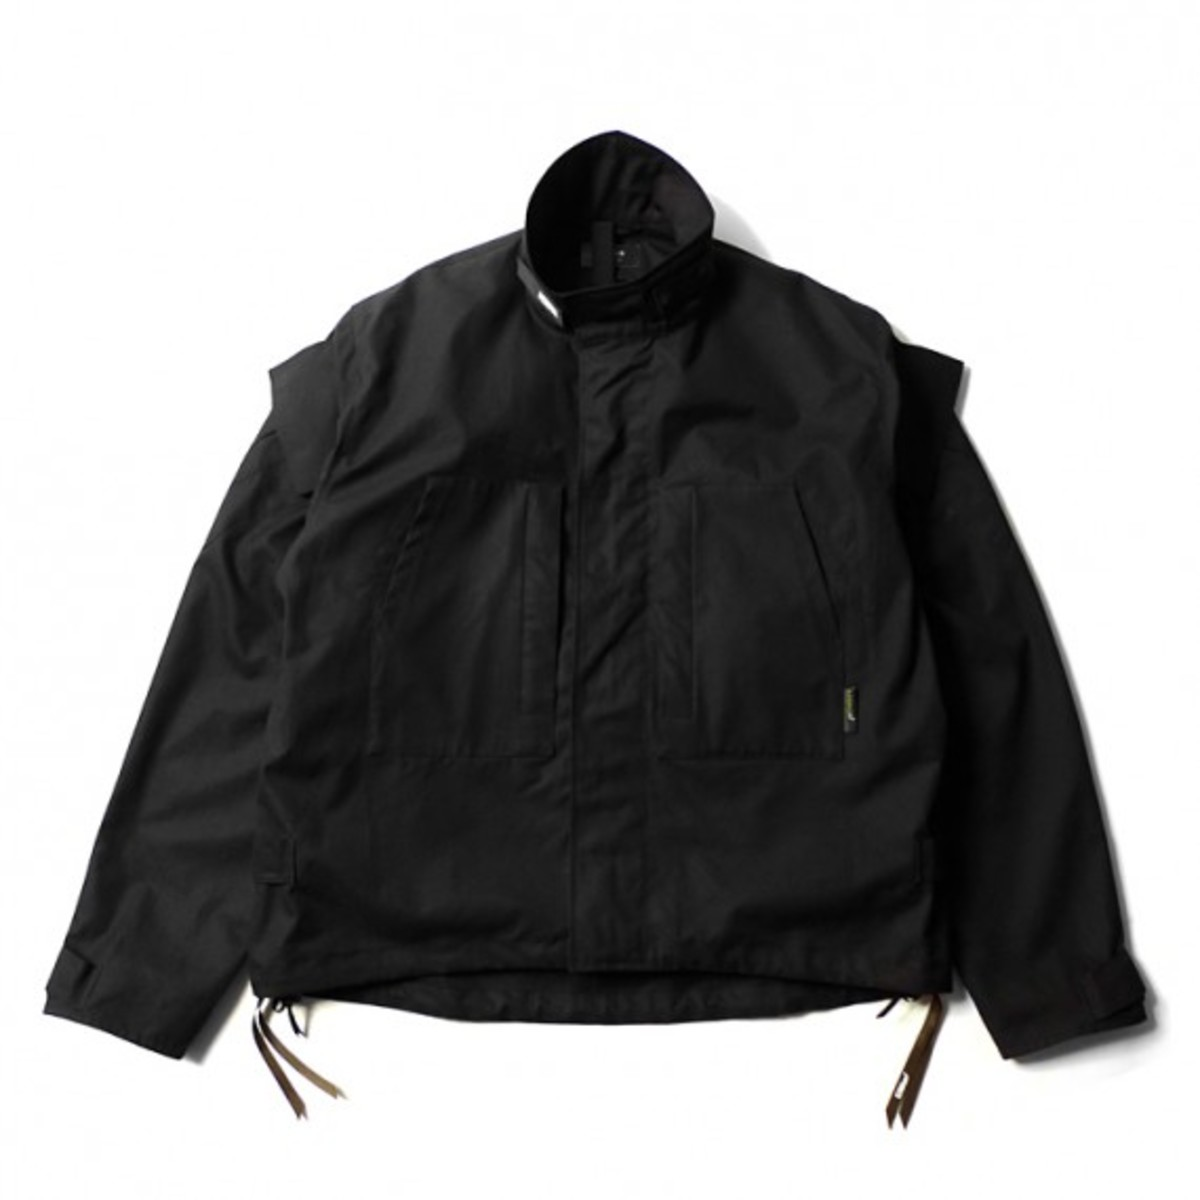 S-J14 Suspensor Jacket